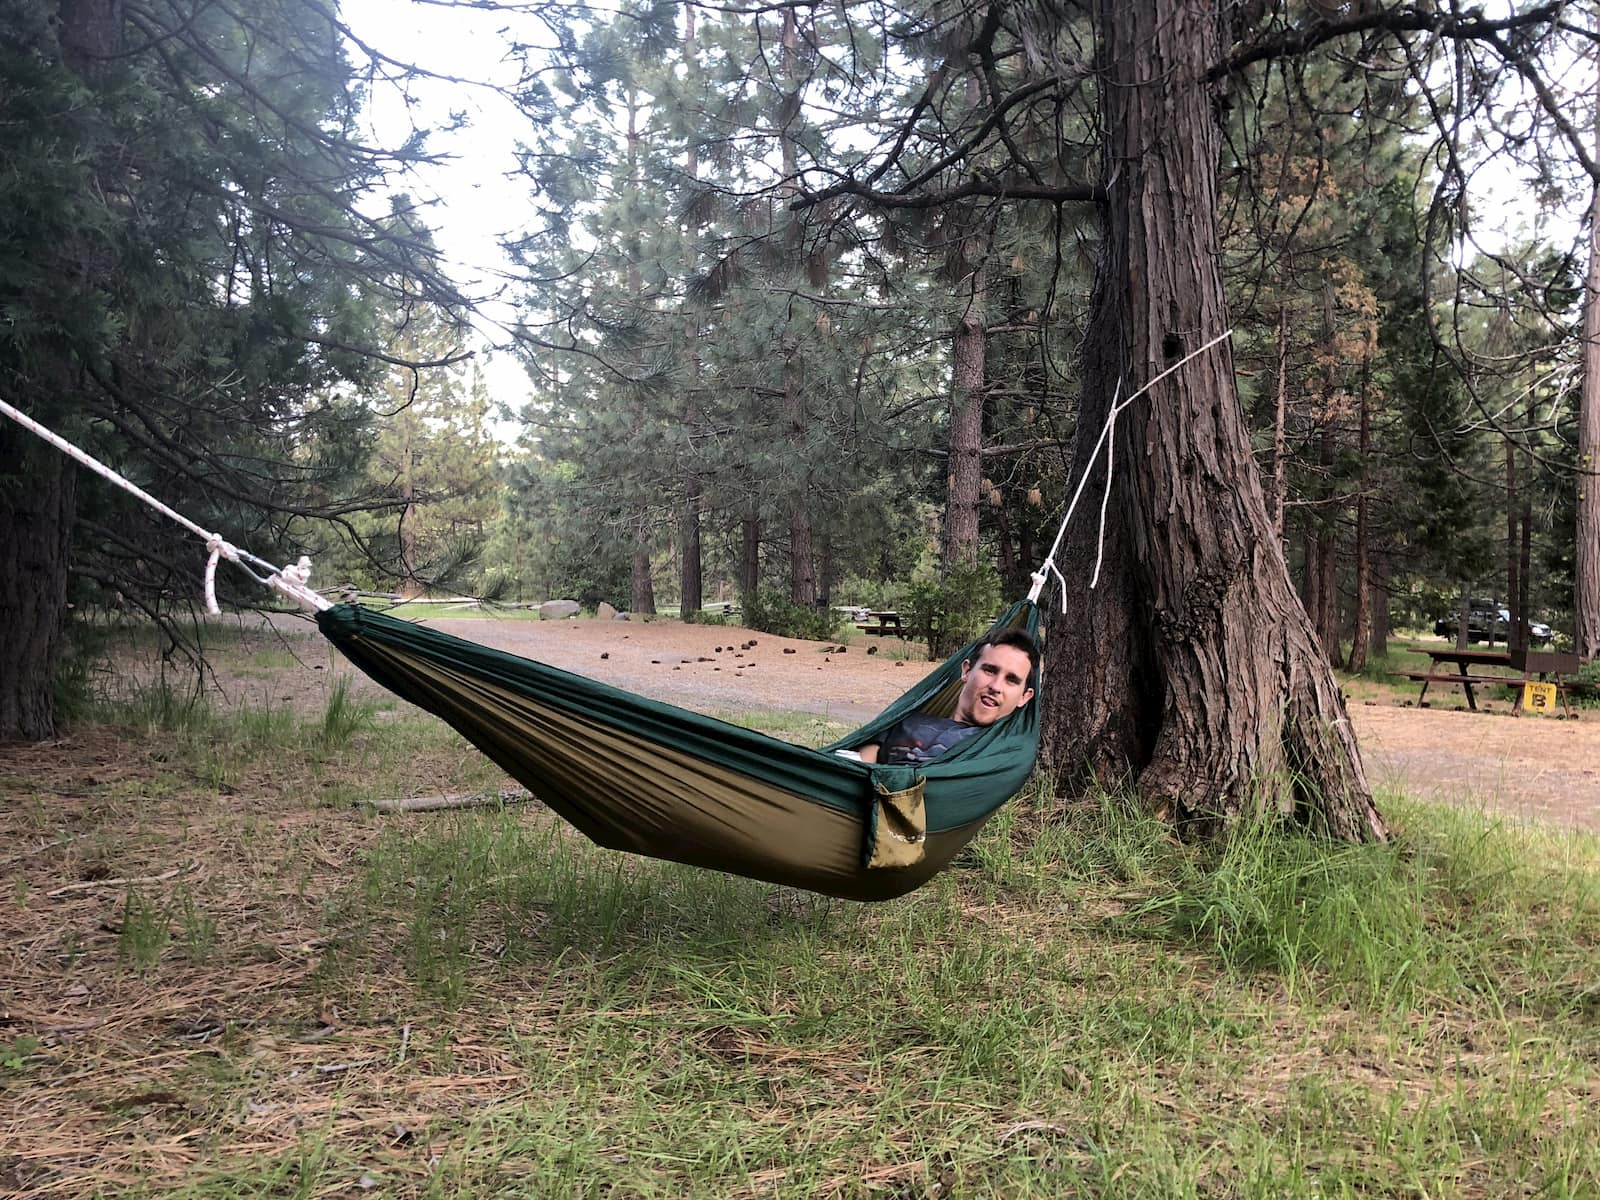 Guy laying in a brown and green hammock in a campsite wooded with large pine trees.